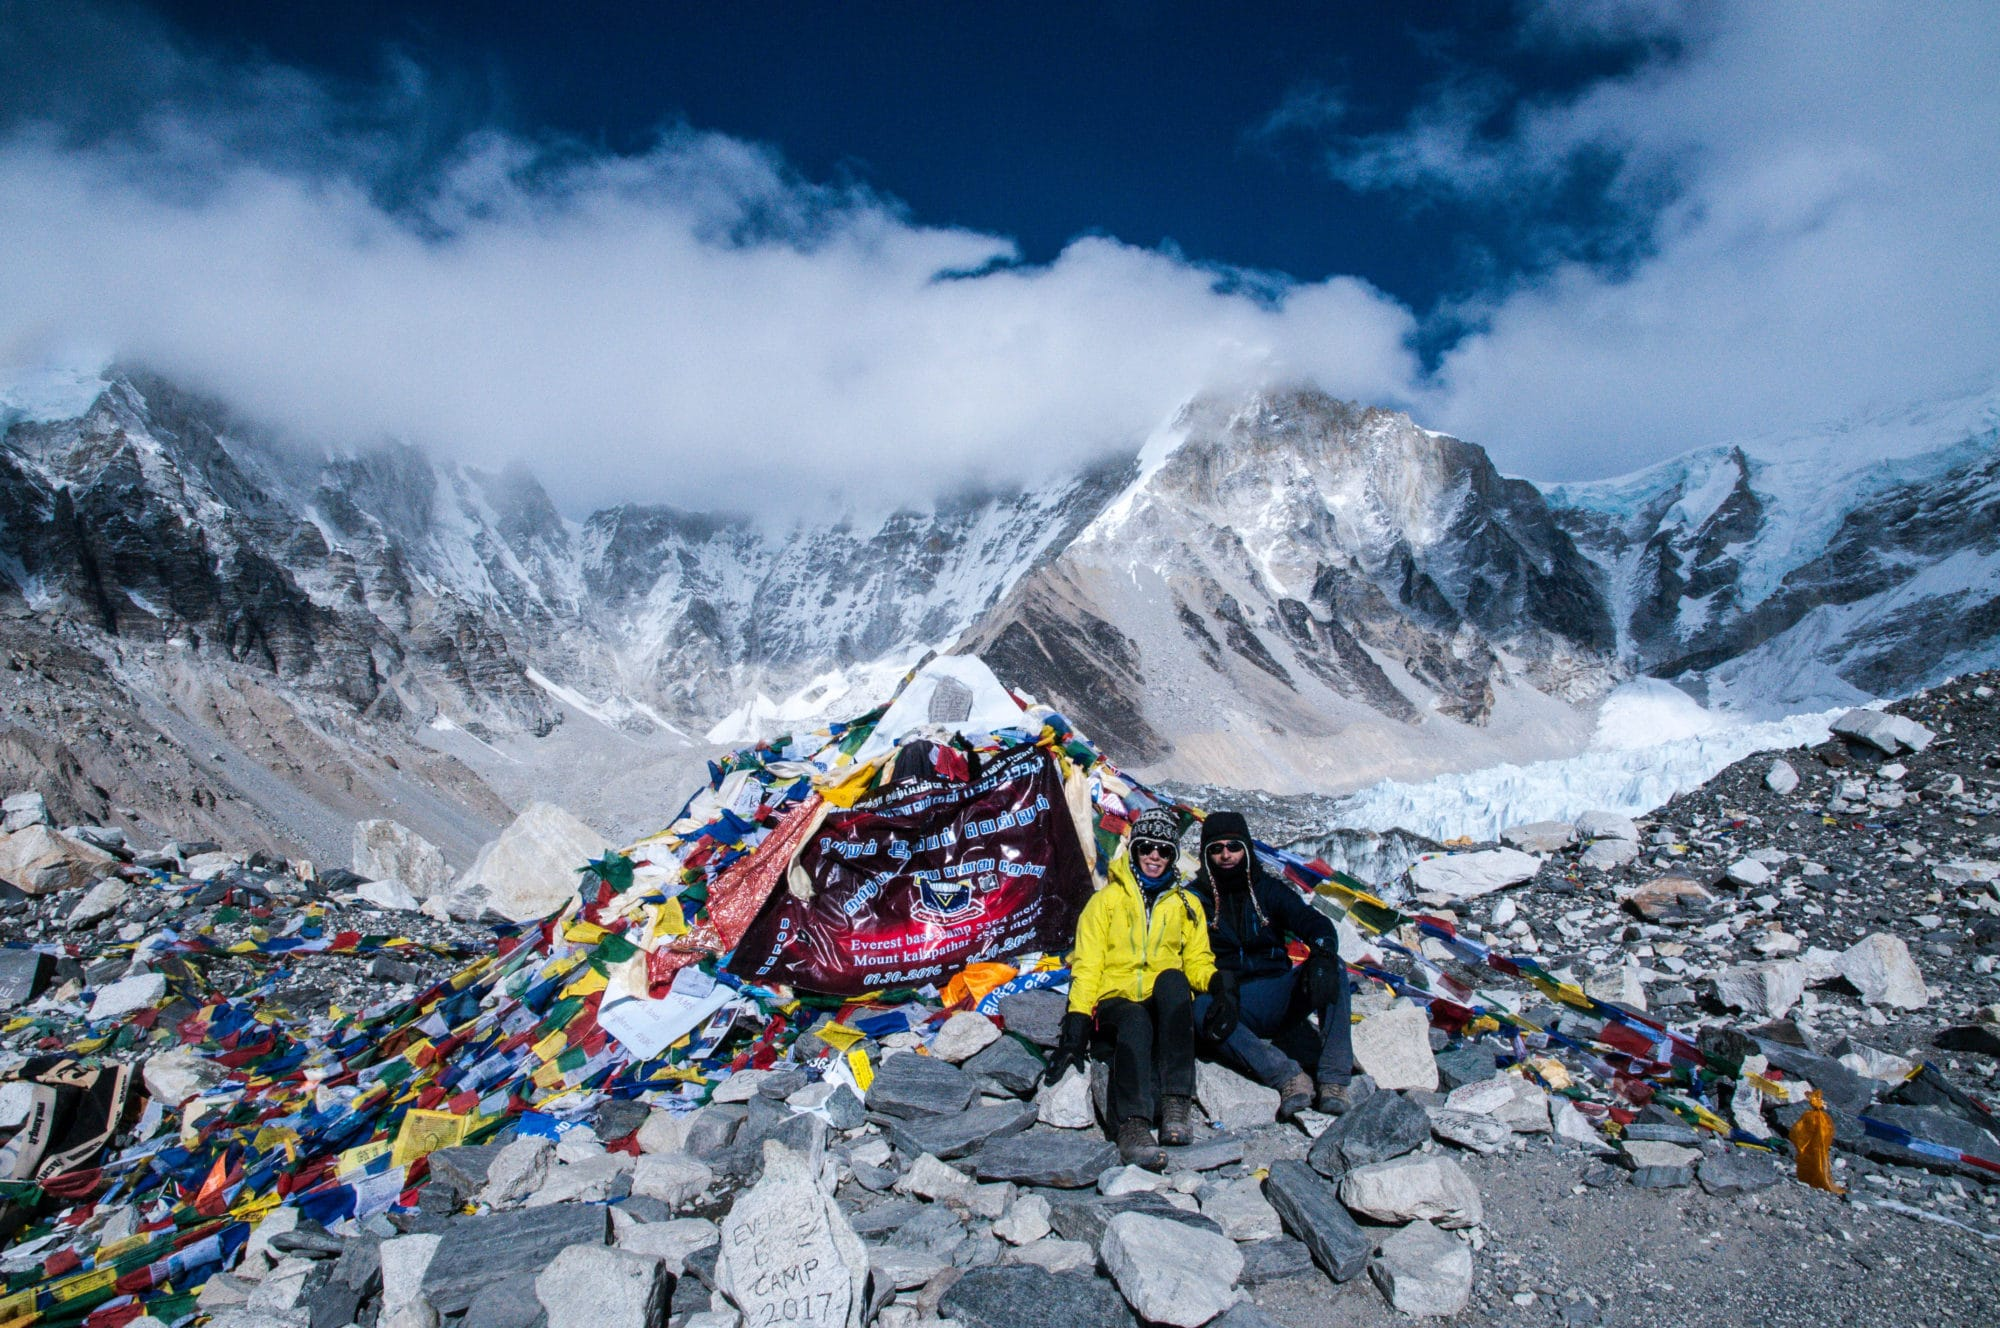 We made it to Mount Everest Base Camp on January 7, 2017